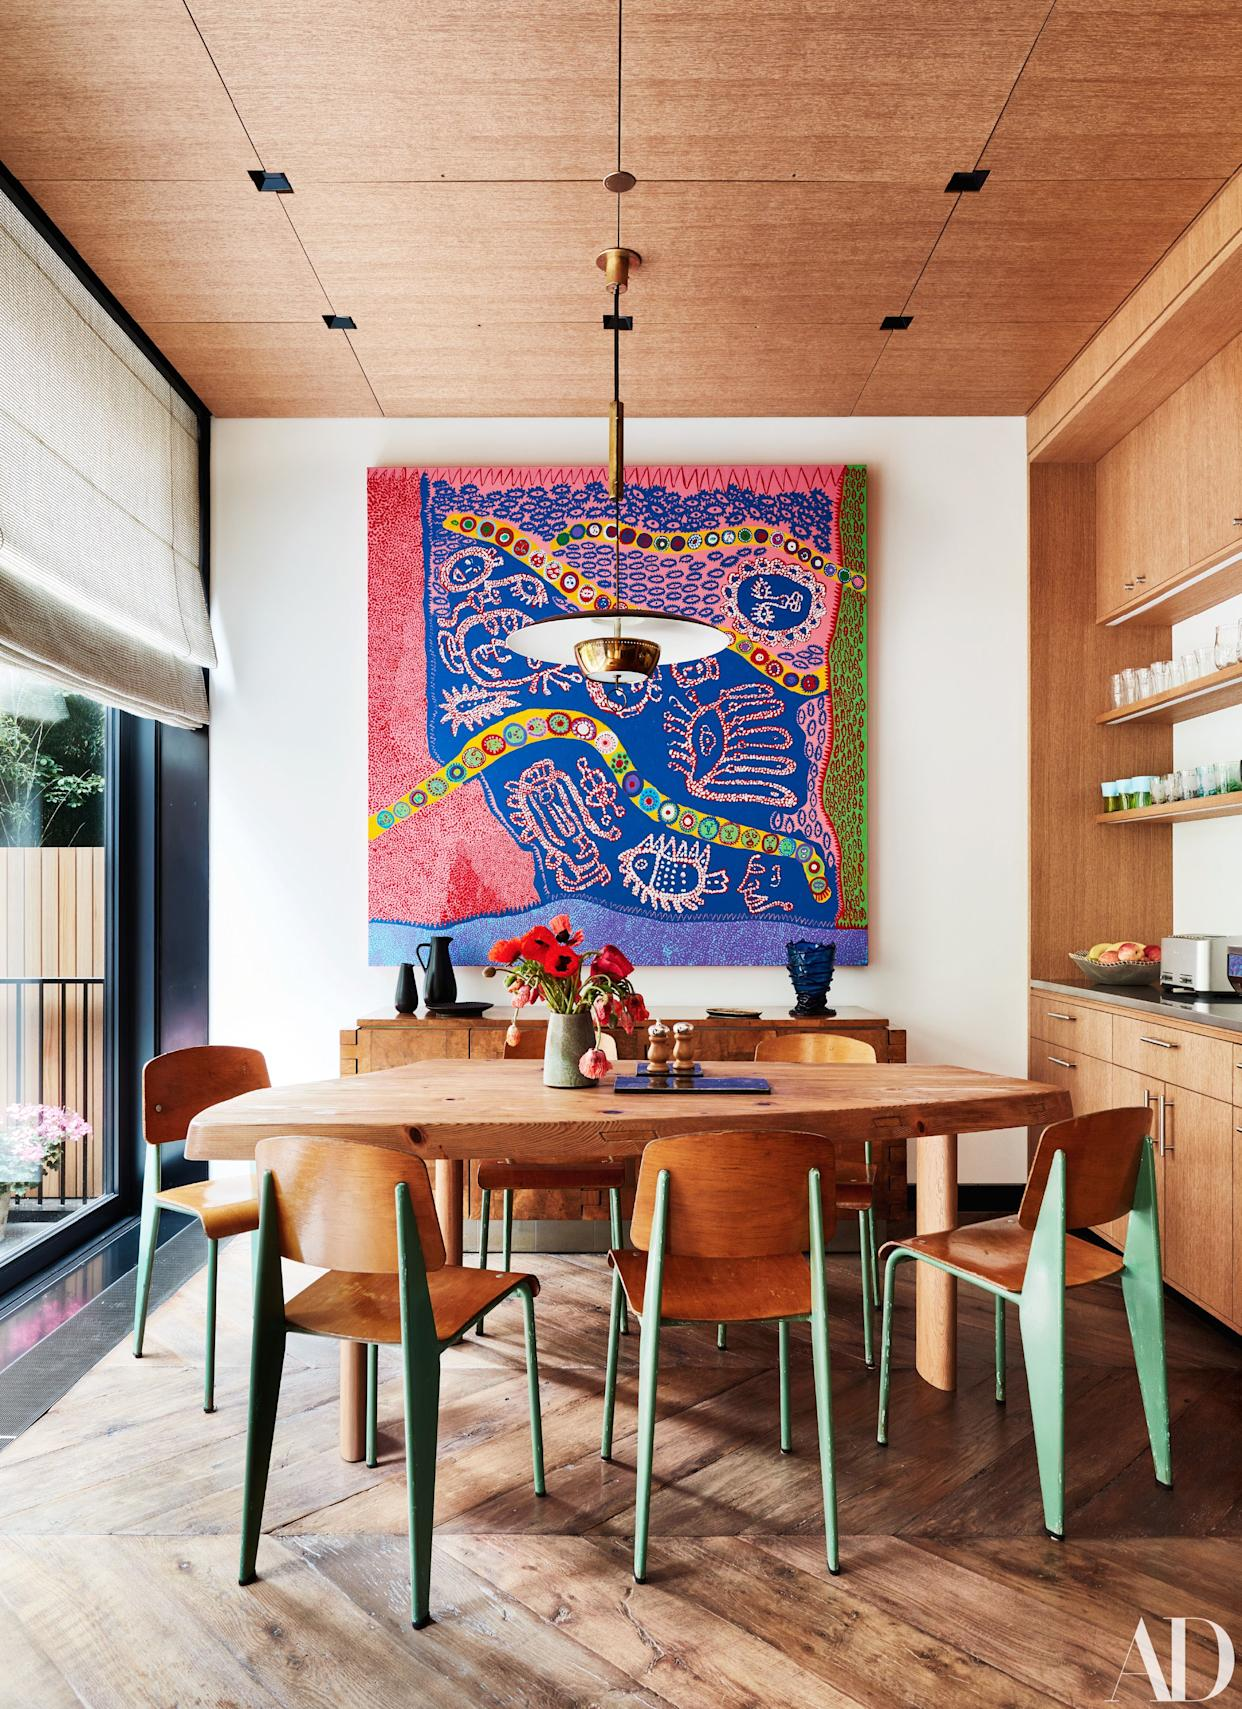 """<div class=""""caption""""> A colorful painting by Yayoi Kusama hangs in the breakfast room. </div>"""